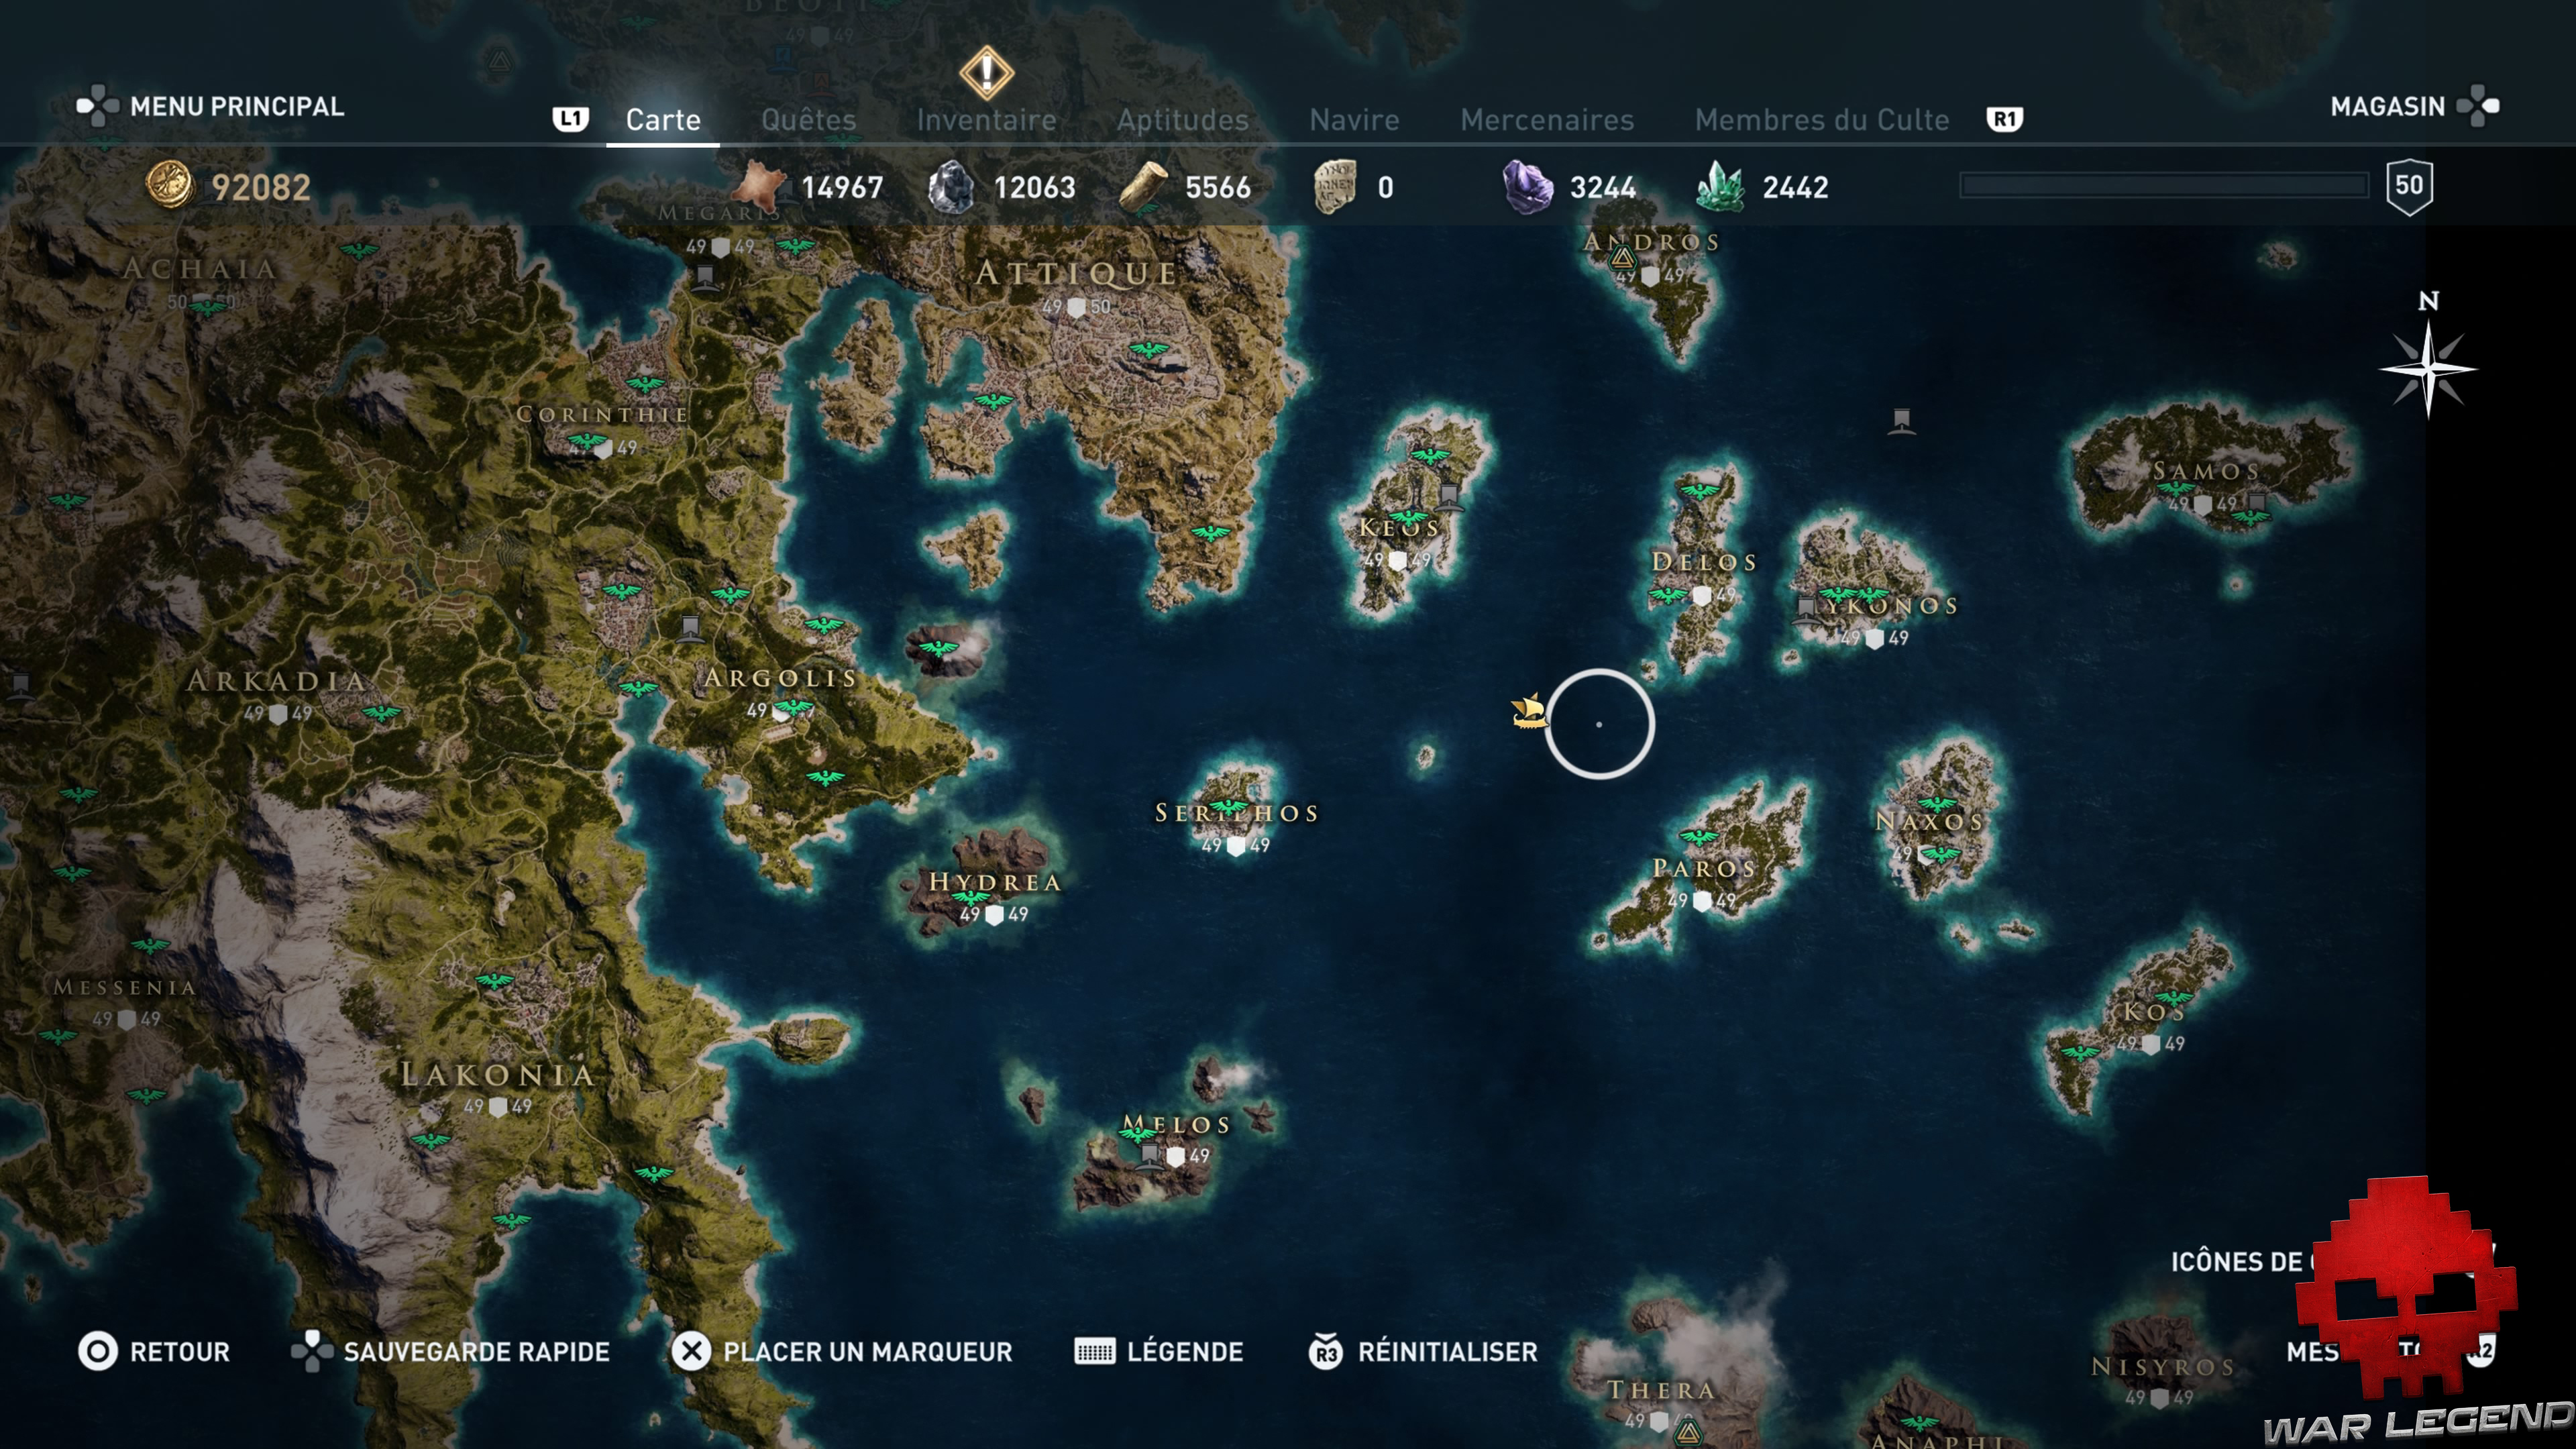 Assassin S Creed Odyssey Karte.Guide Assassin S Creed Odyssey Tous Les Cosmetiques De Navire